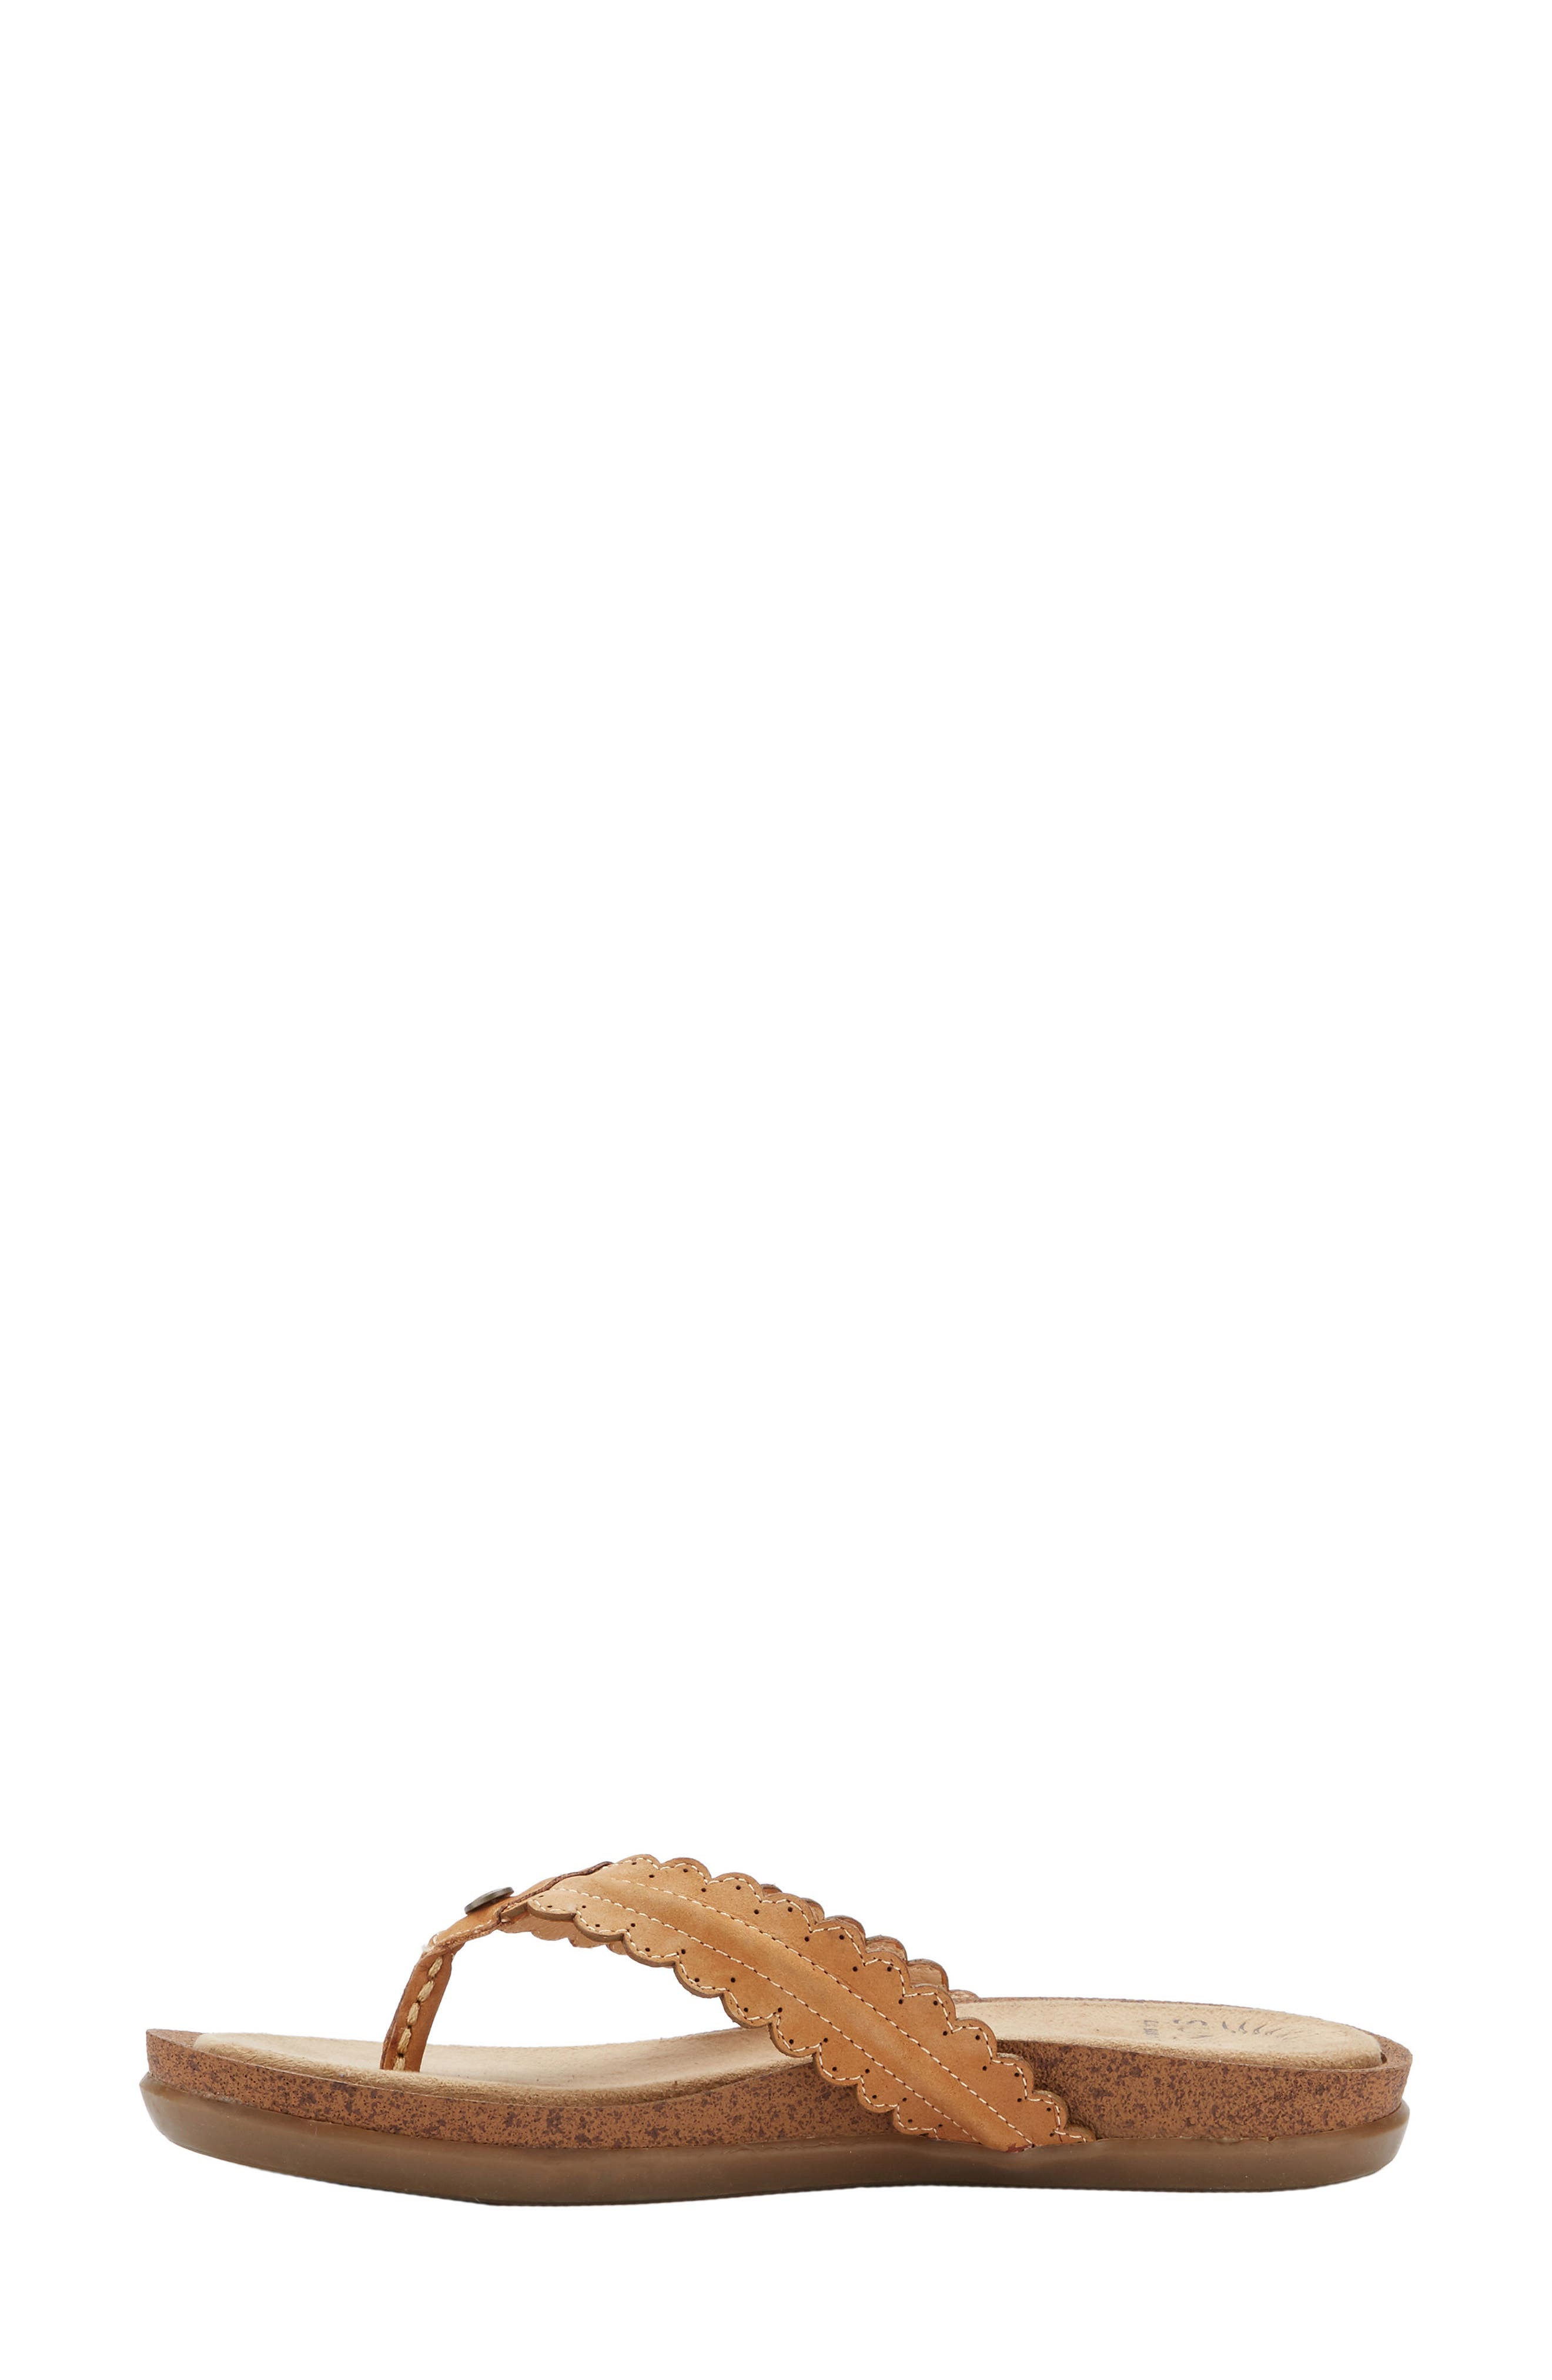 G.H. Bass and Co. Samantha Thong Sandal,                             Alternate thumbnail 8, color,